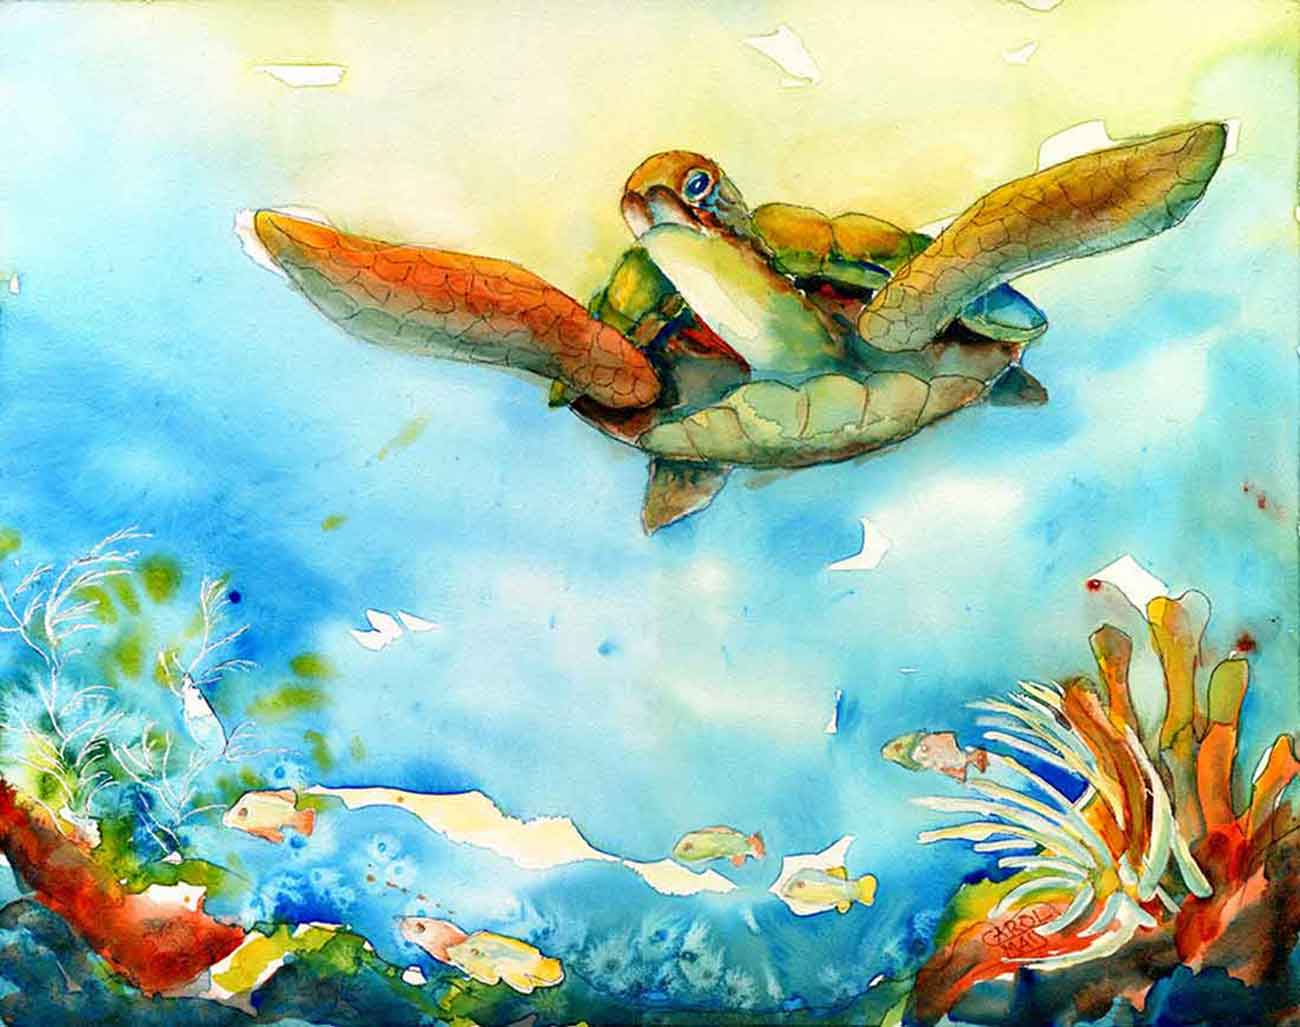 Beautiful Nature Painting of a sea turtle painted with watercolor by the painting artist Carol May